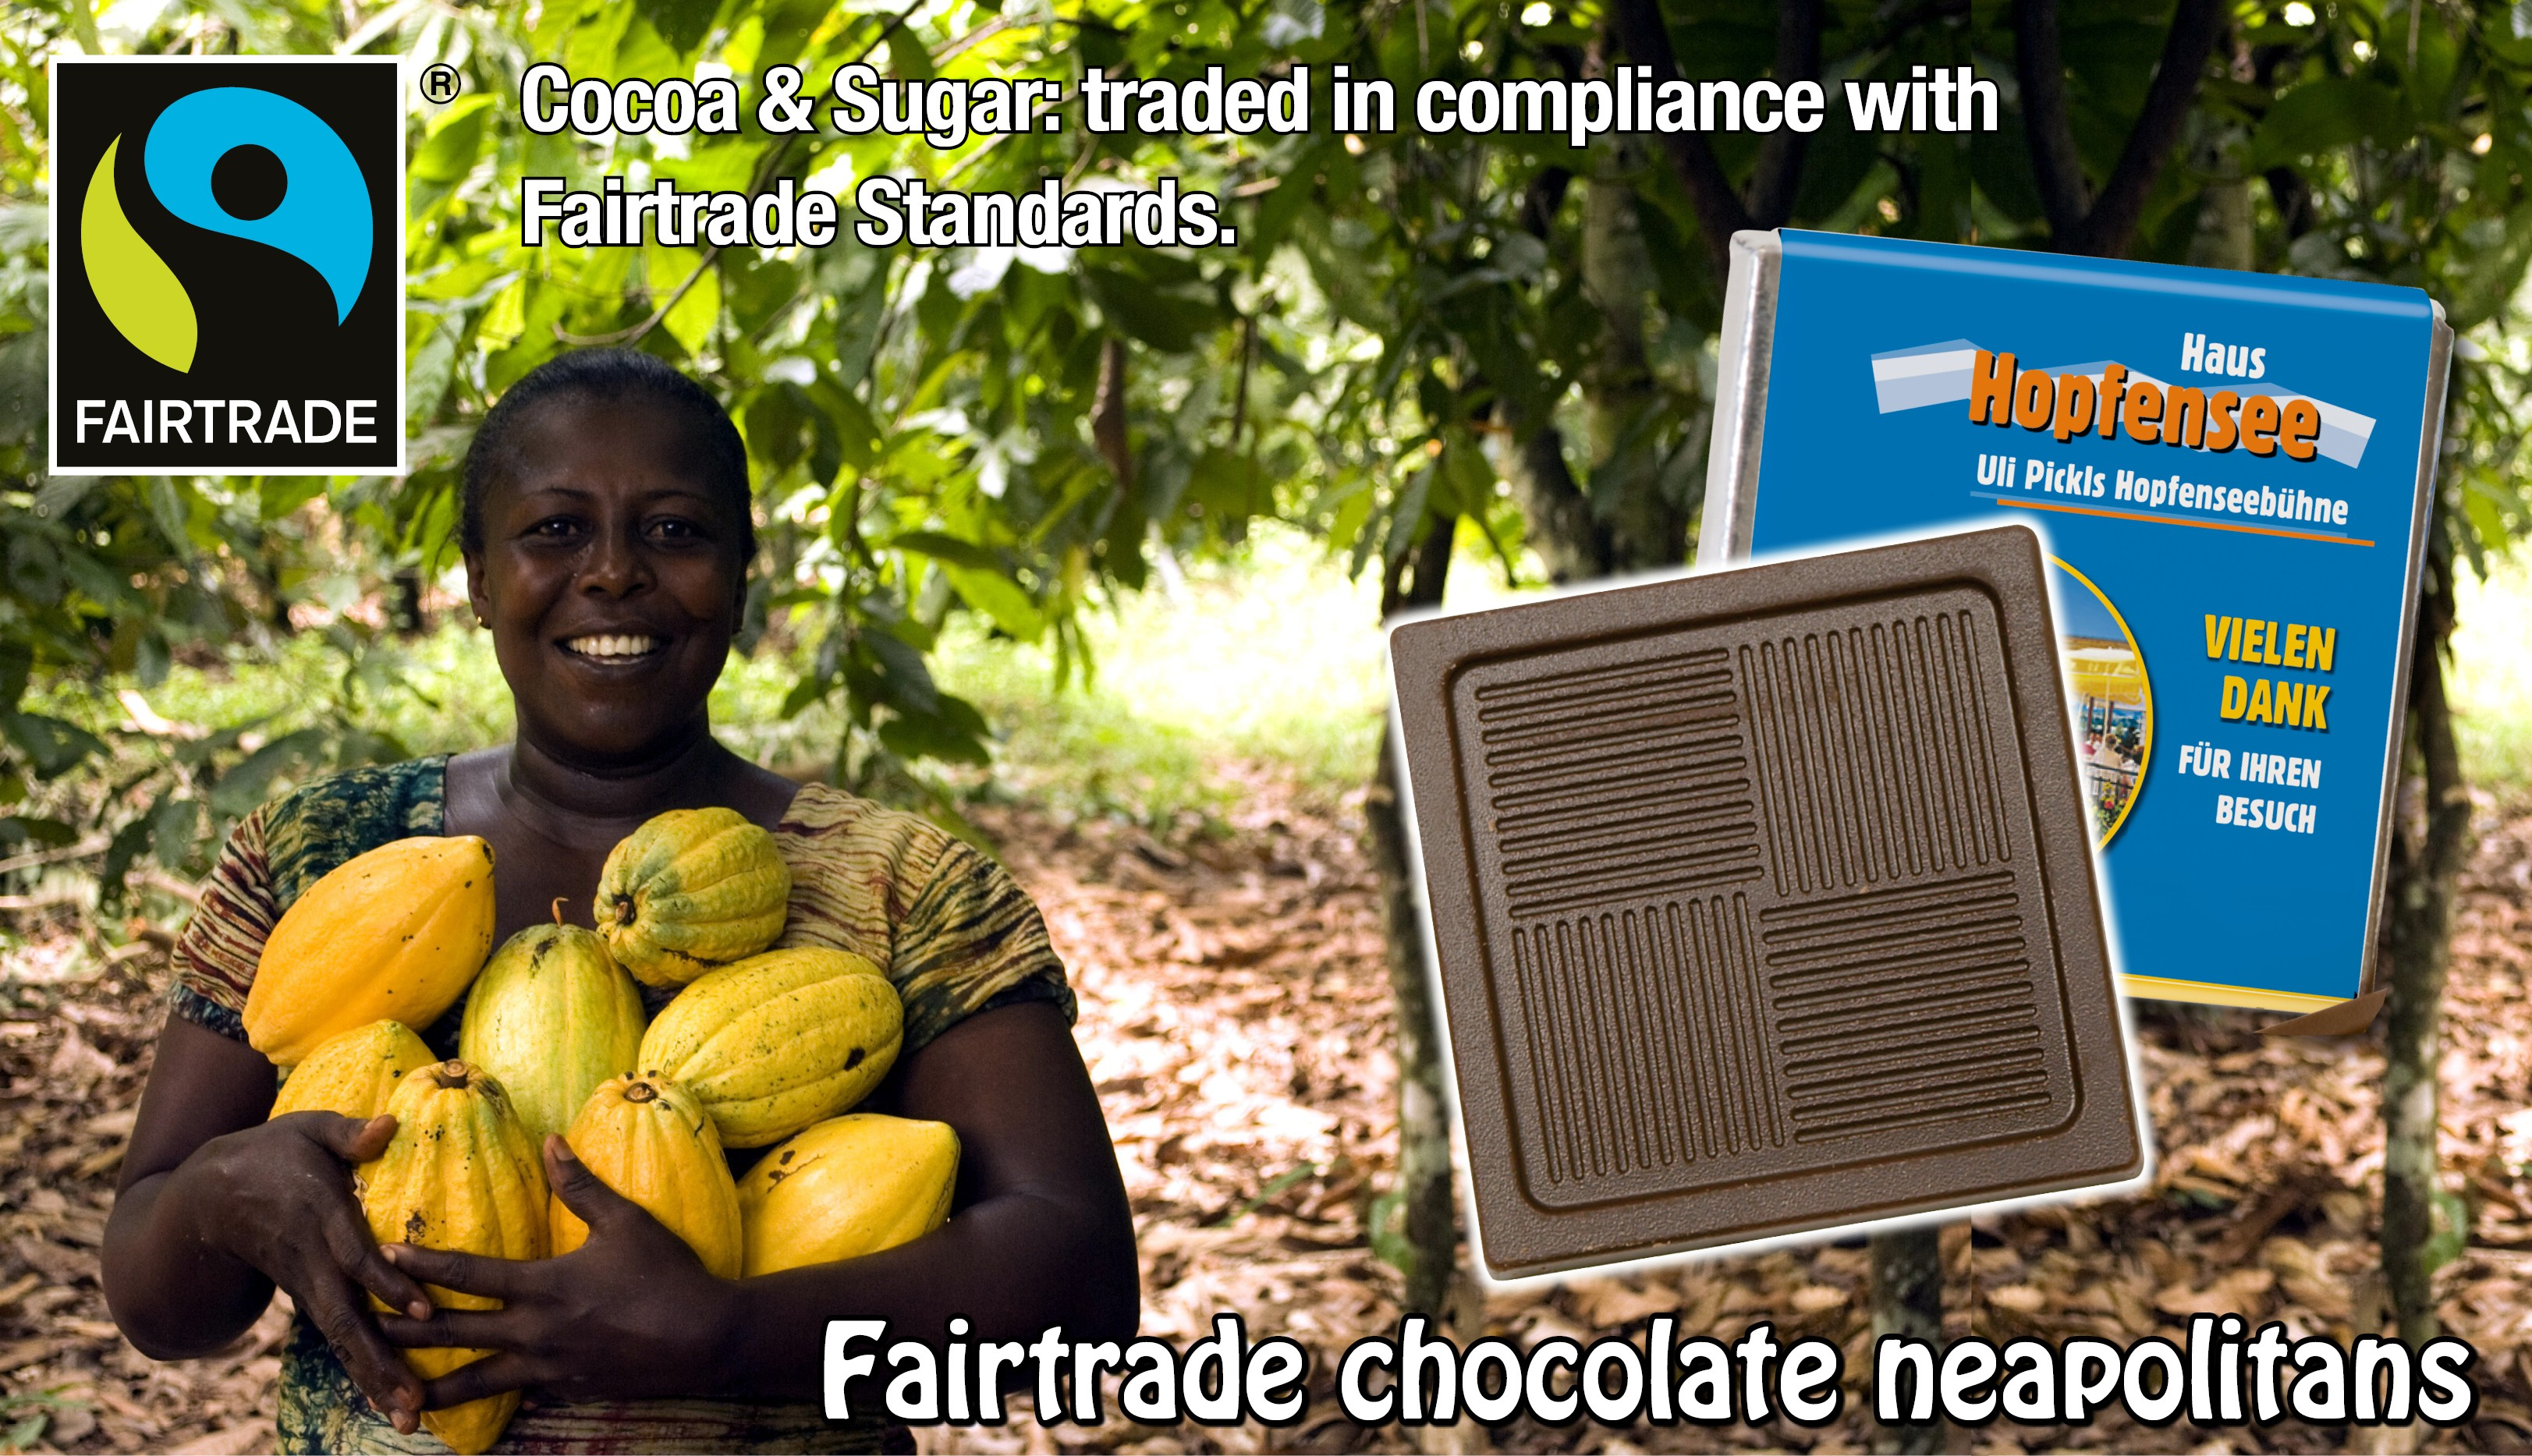 Fairtrade Chocolate